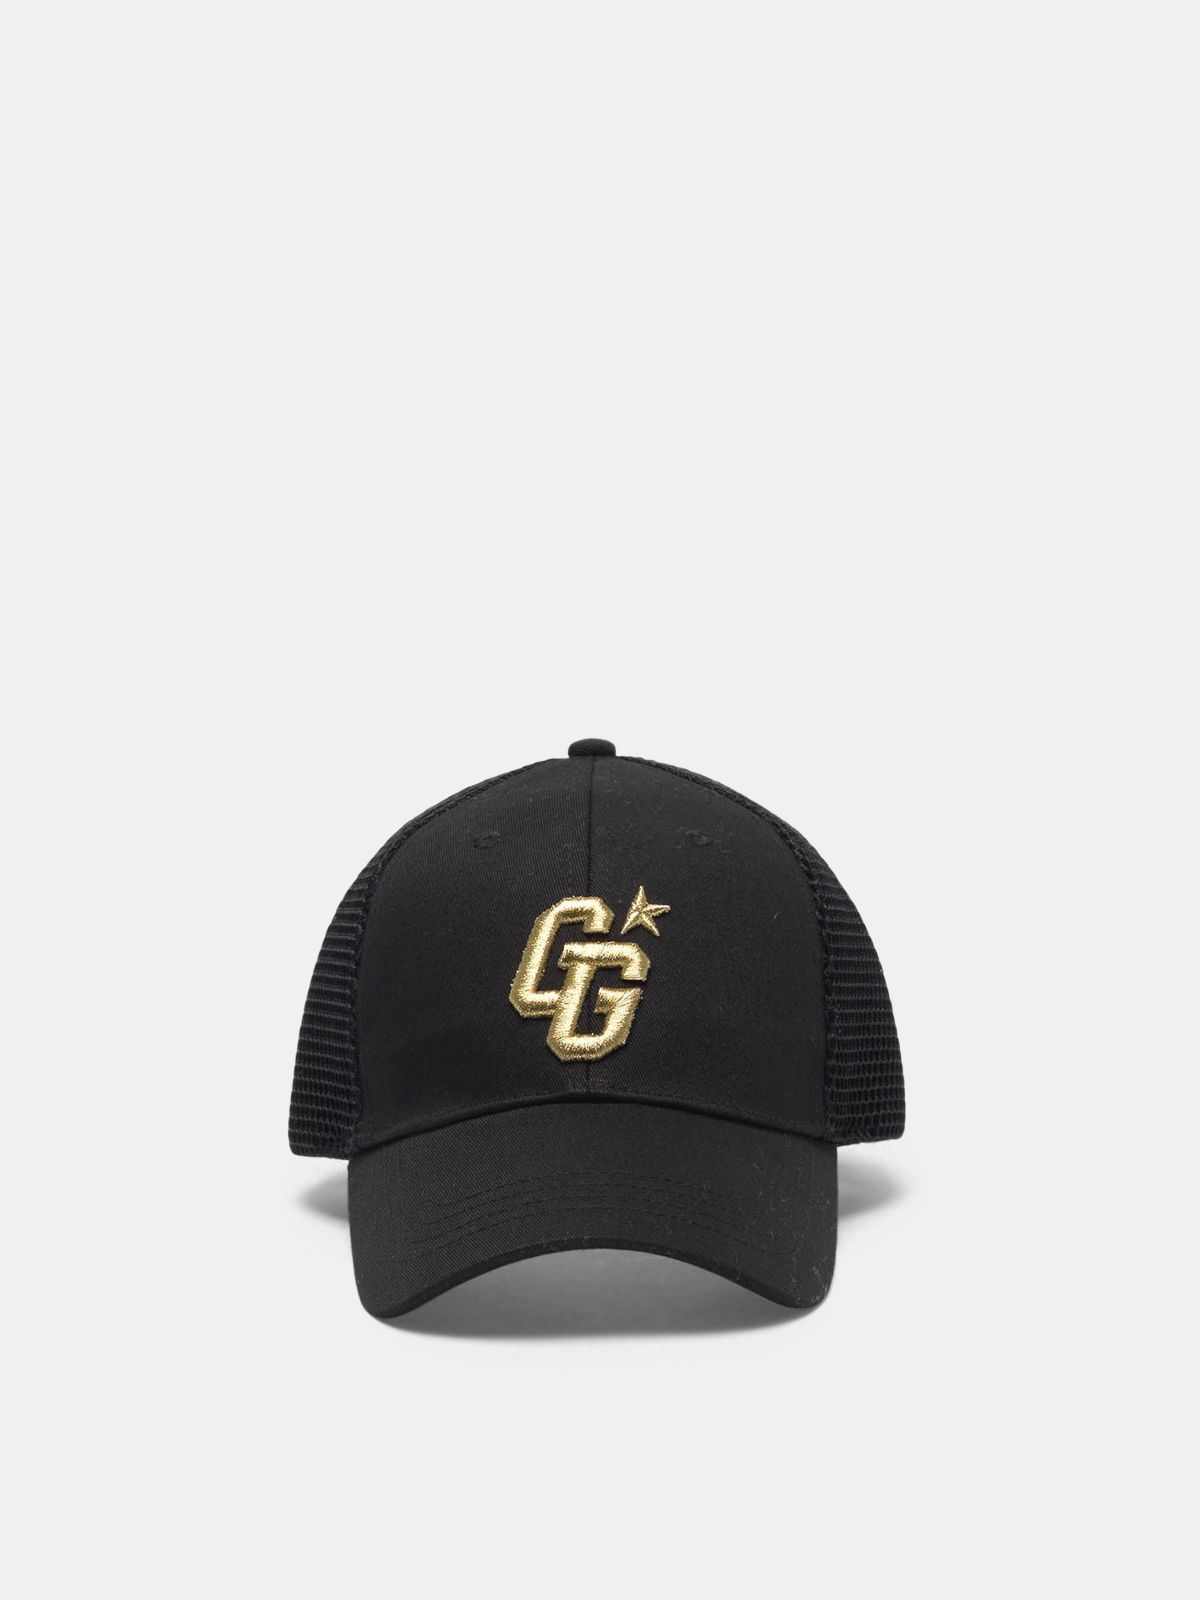 Golden Goose - Aki baseball cap with GG embroidery and mesh back in